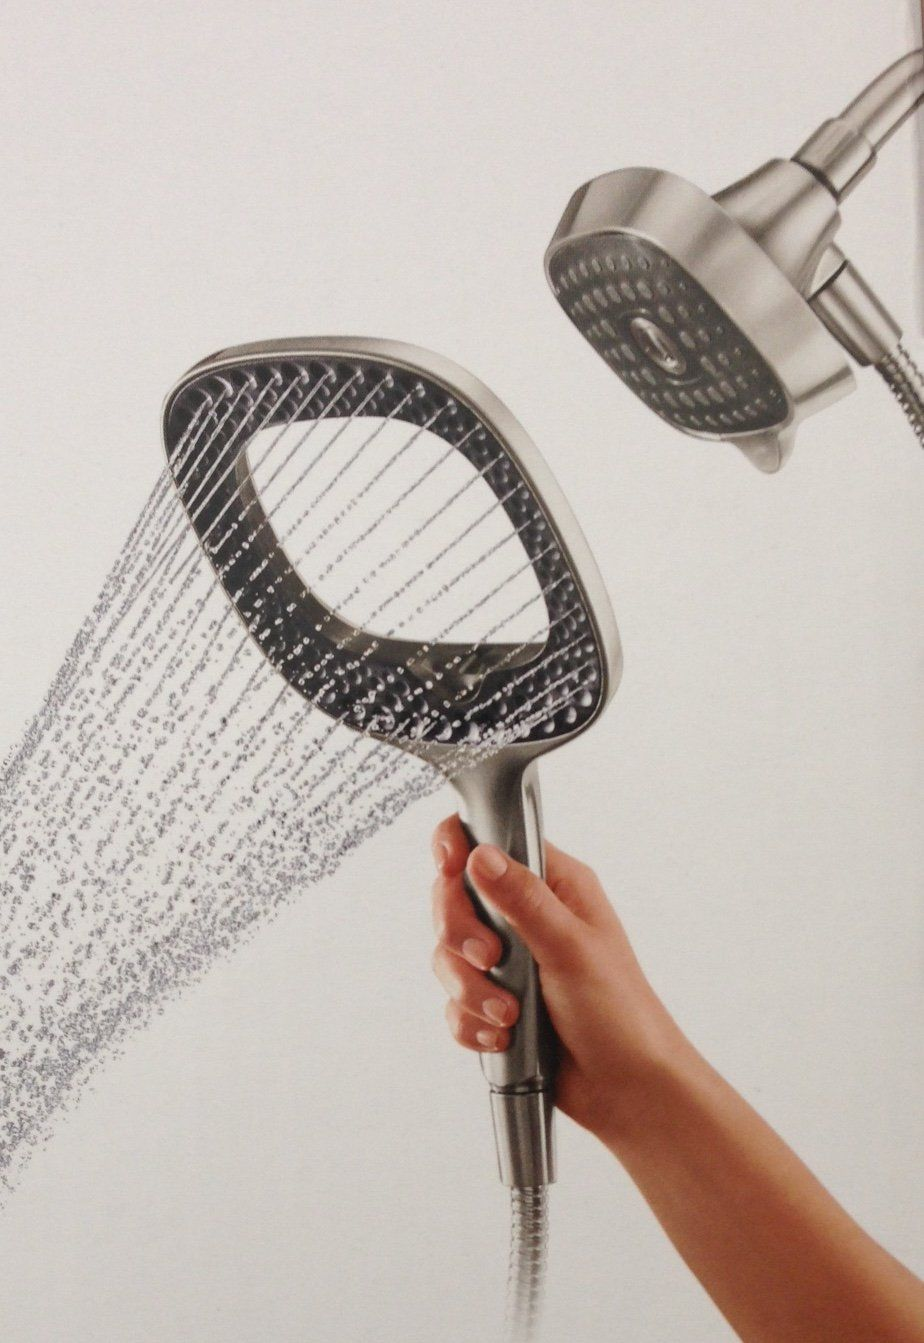 KOHLER R77634 Converge 5 Spray Handheld Shower Head Combo With ...